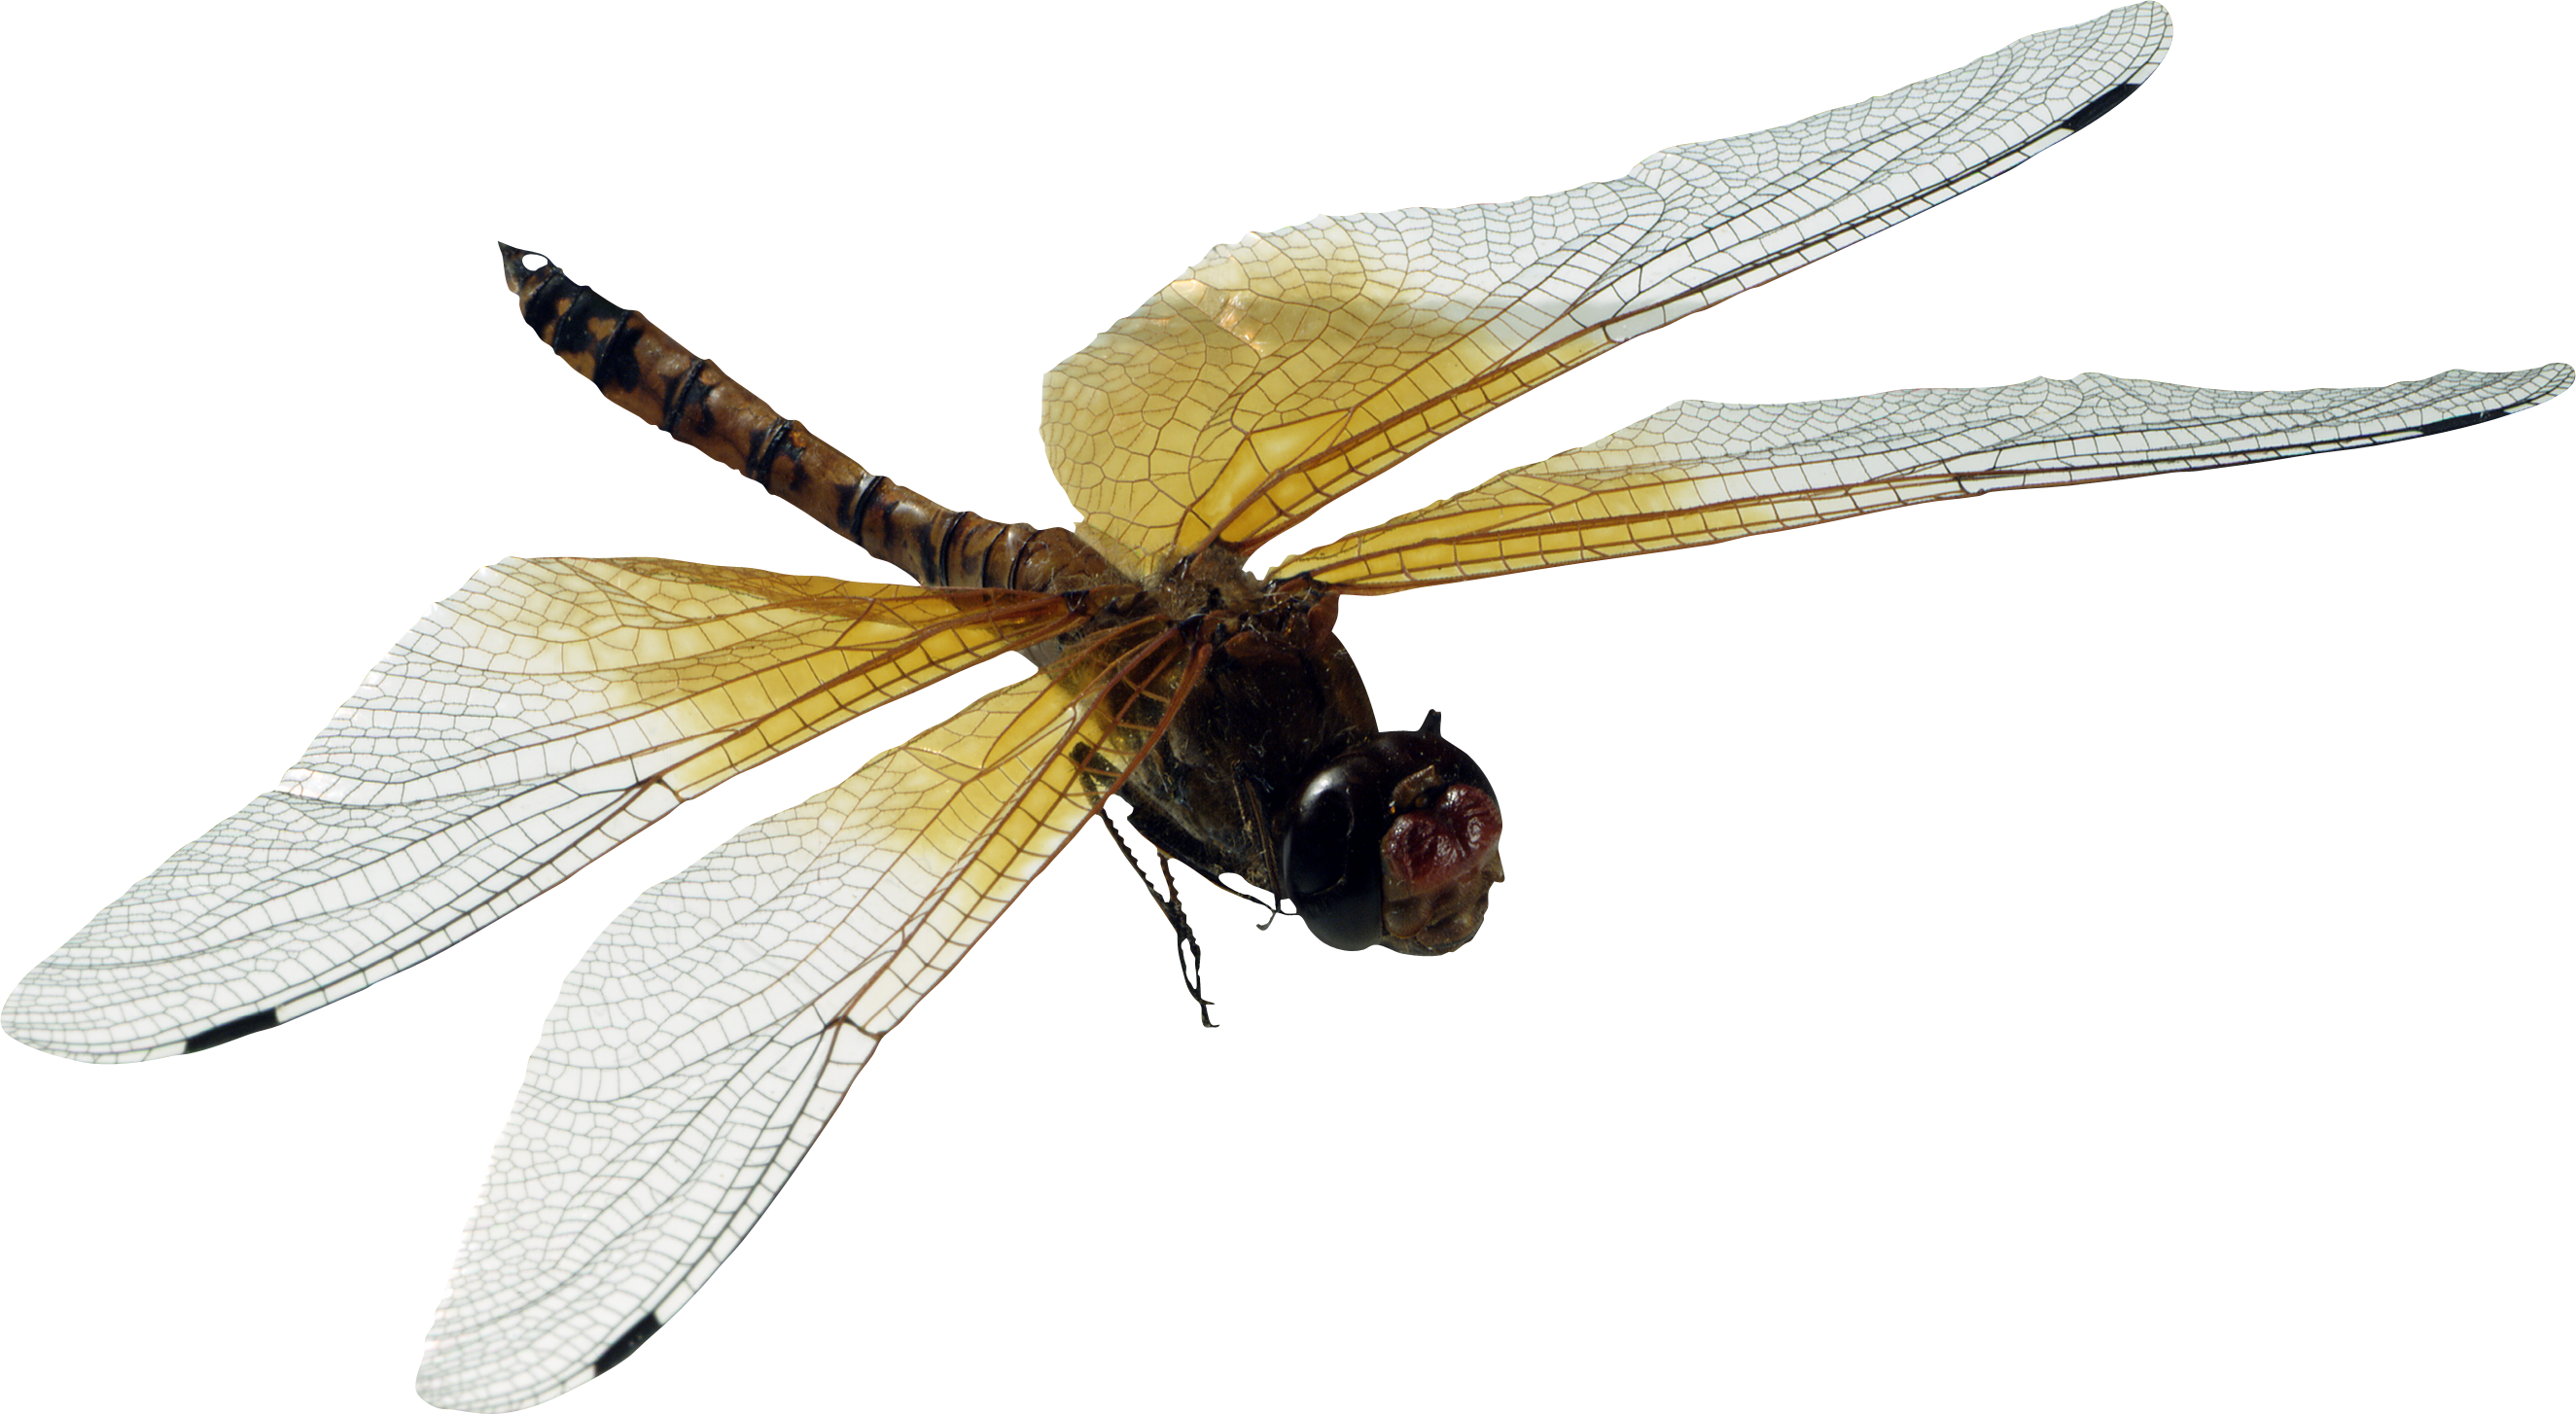 Dragonfly PNG - 1738